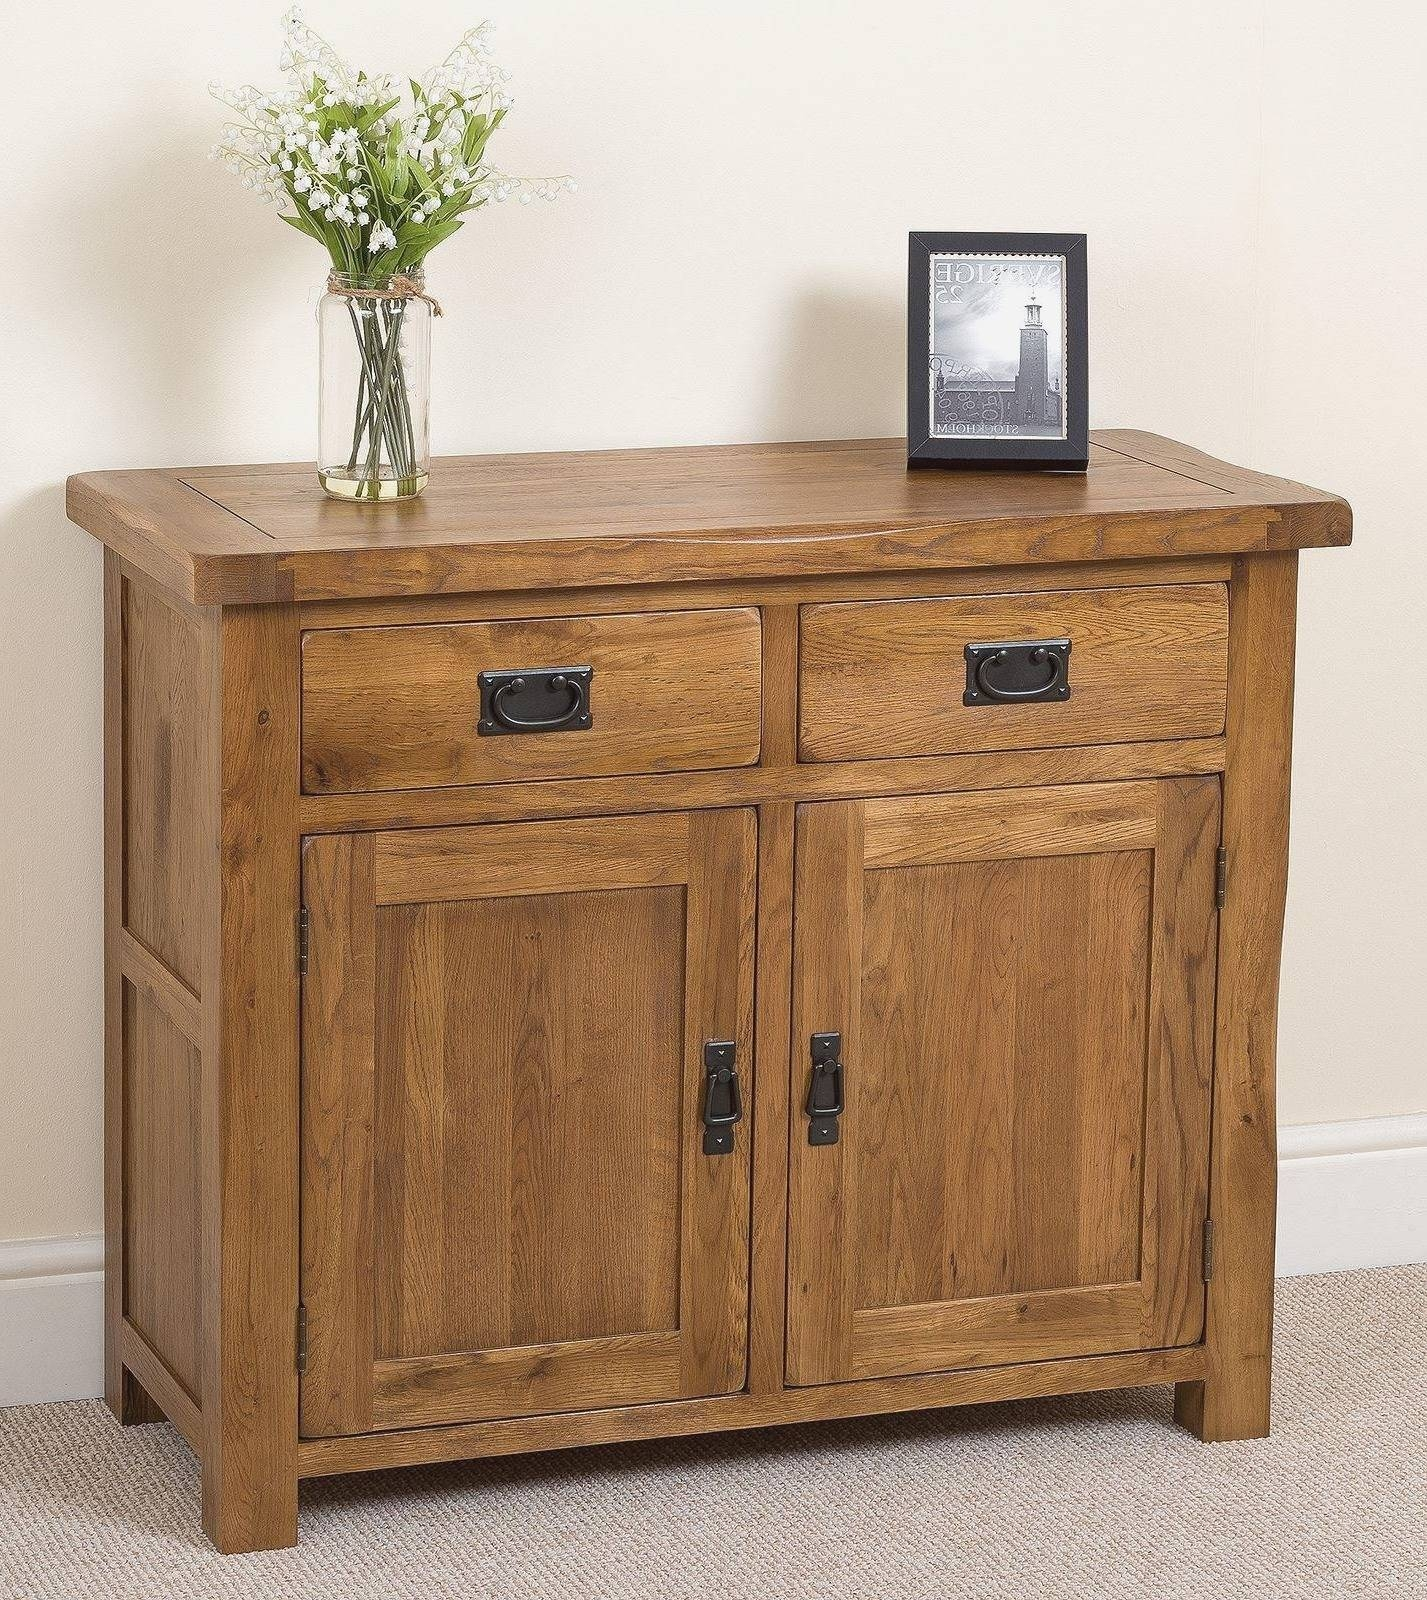 Solid Wood Sideboards And Buffets | Rembun.co in Real Wood Sideboards (Image 25 of 30)